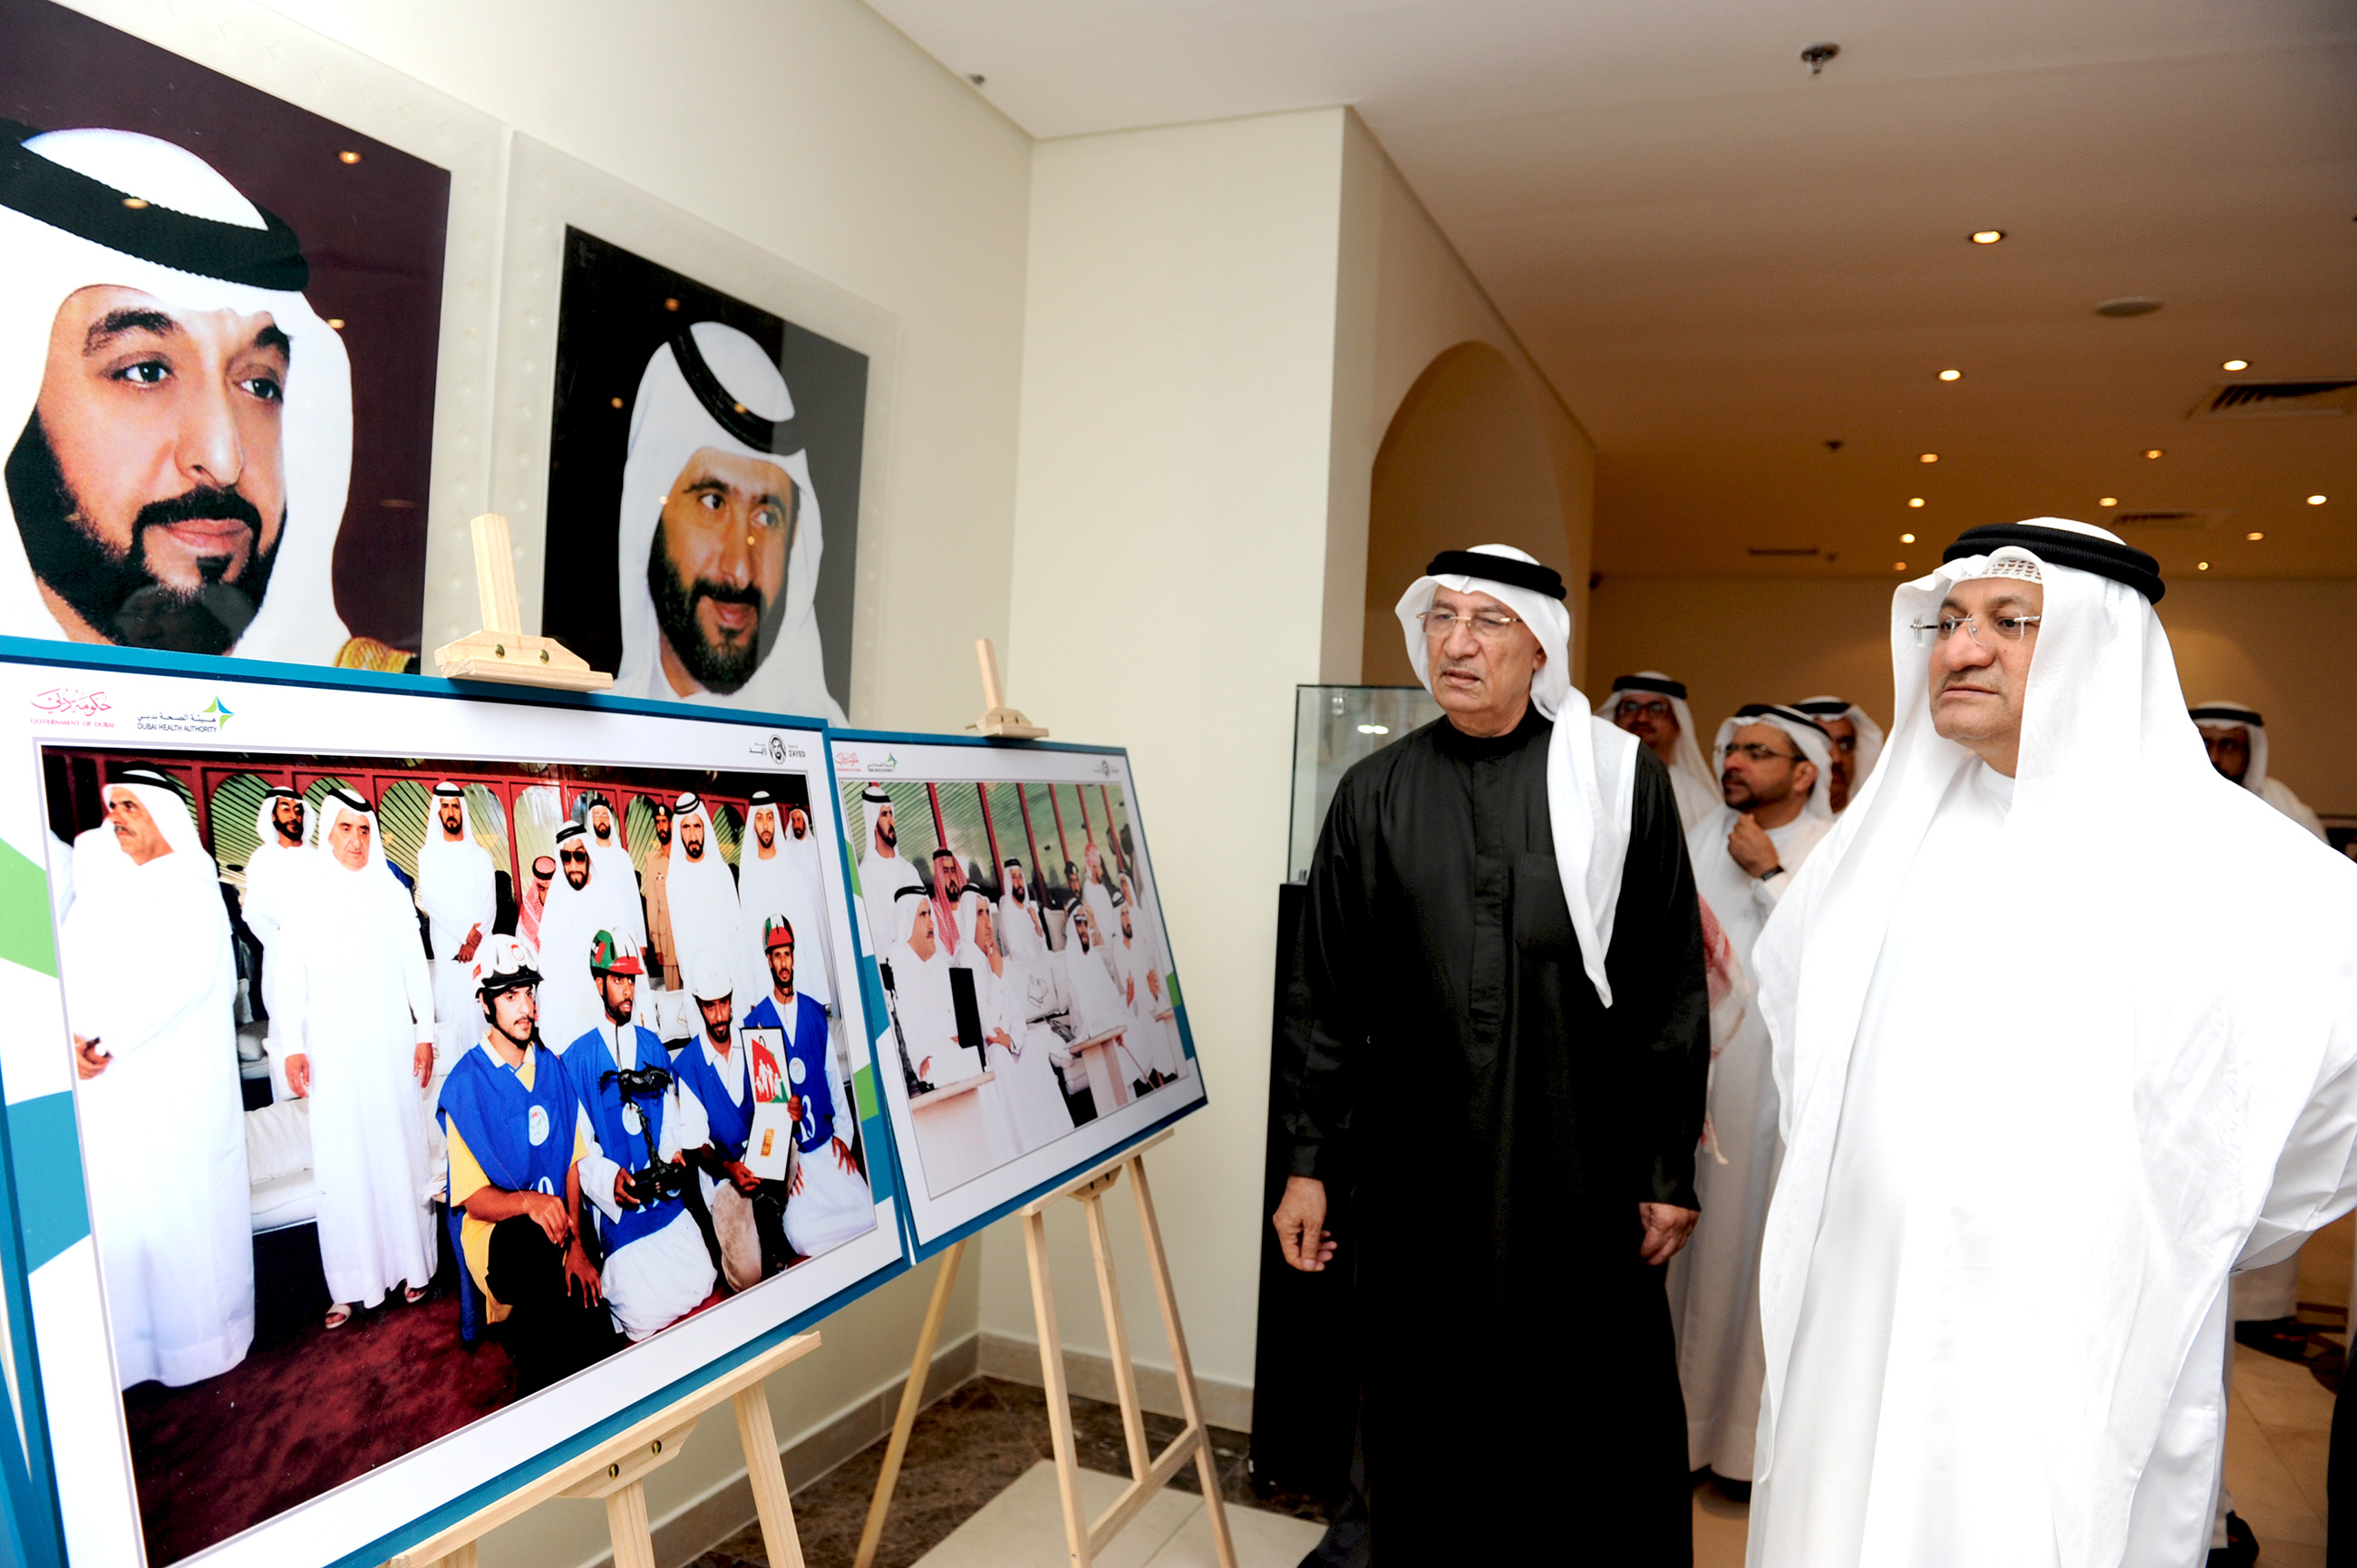 dha holds exhibition in memory of sheikh zayed